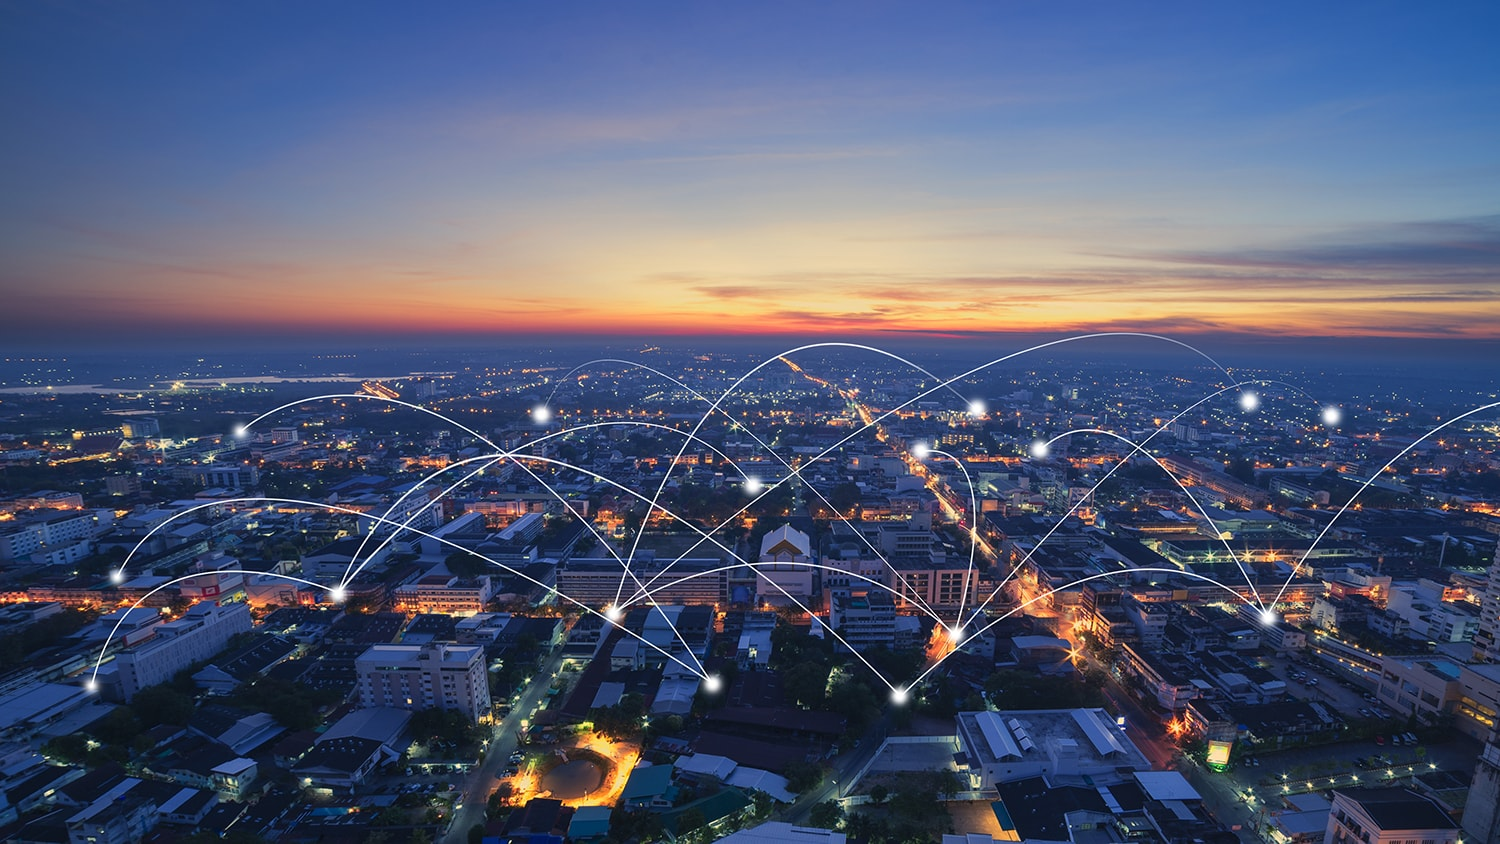 City at night with network connectivity lines